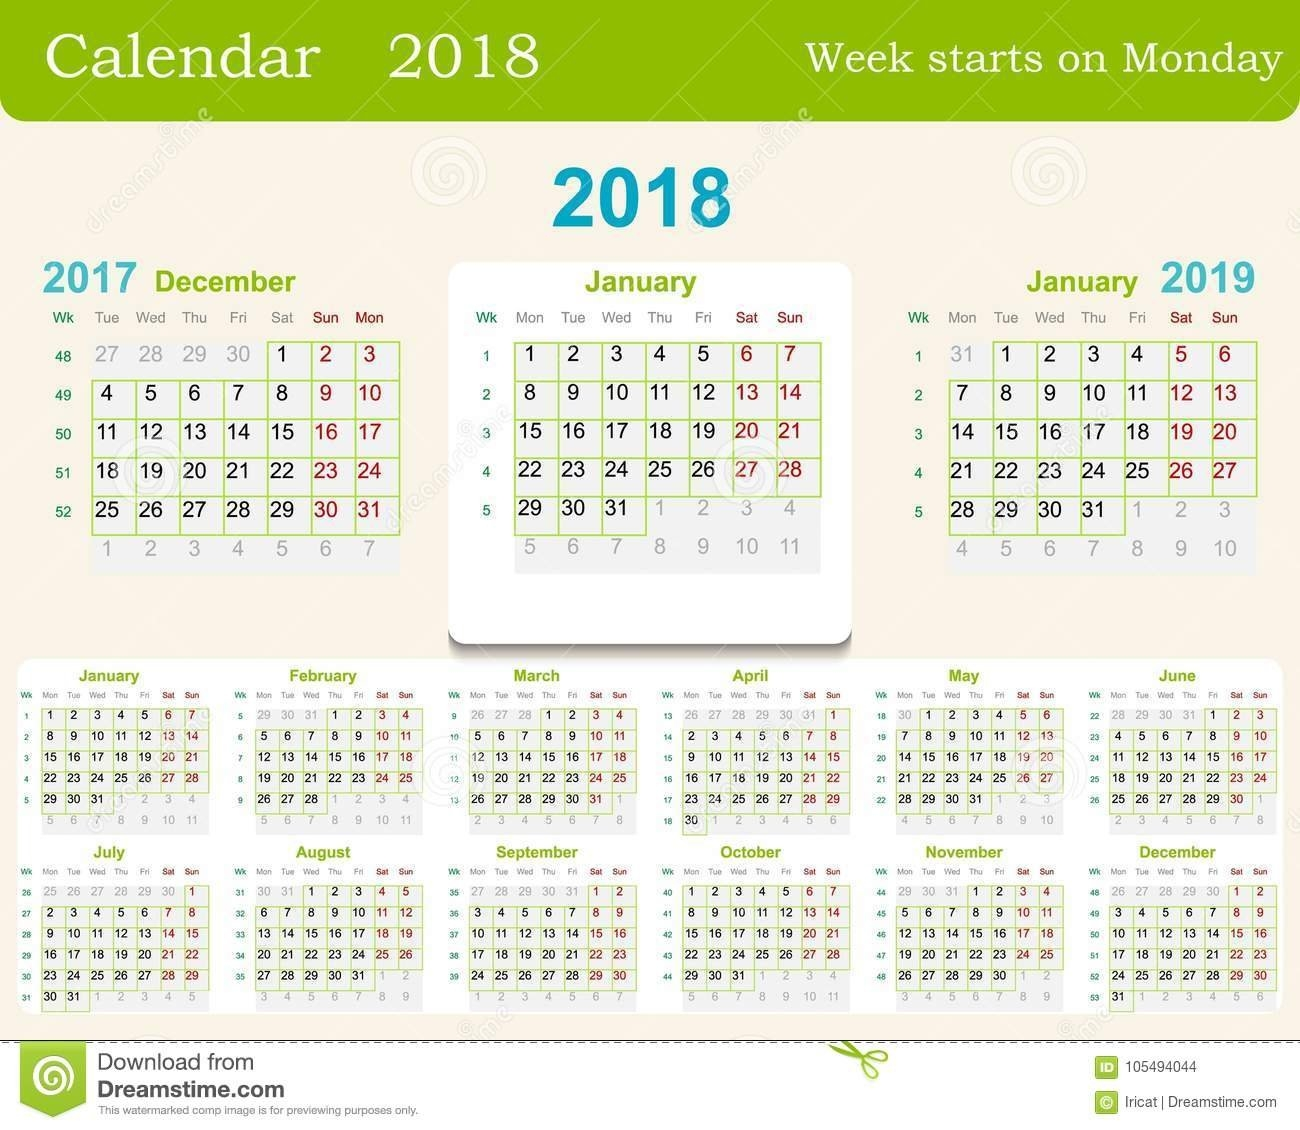 Calendar Grid For 2018 Week Starts From Monday And From December Of Calendar Week 51 2019